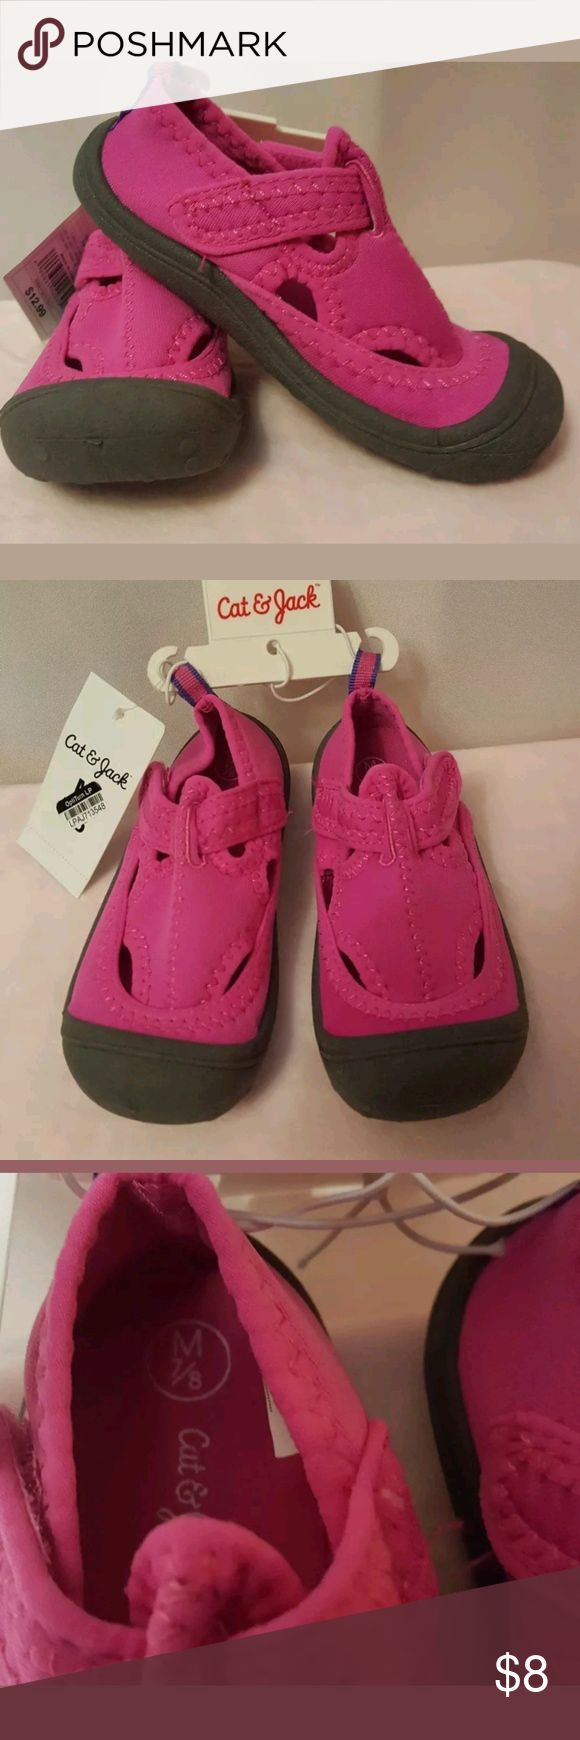 Cat&Jack Toddler Girls Cass Pink Water Shoes 7/8 M IToddler Girls' Cass Water Shoes Pink - Cat & Jack™. These toddler girls' water shoes will keep her feet protected while she plays in the water.  Great for the beach, splash pad, water park, or pool days.  Polyester construction for durability and comfort  Slip on water shoe with Velcro strap  Soft pink fabric  Thick rubber sole for traction  Wipe clean as needed to maintain quality Cat&Jack Shoes Water Shoes